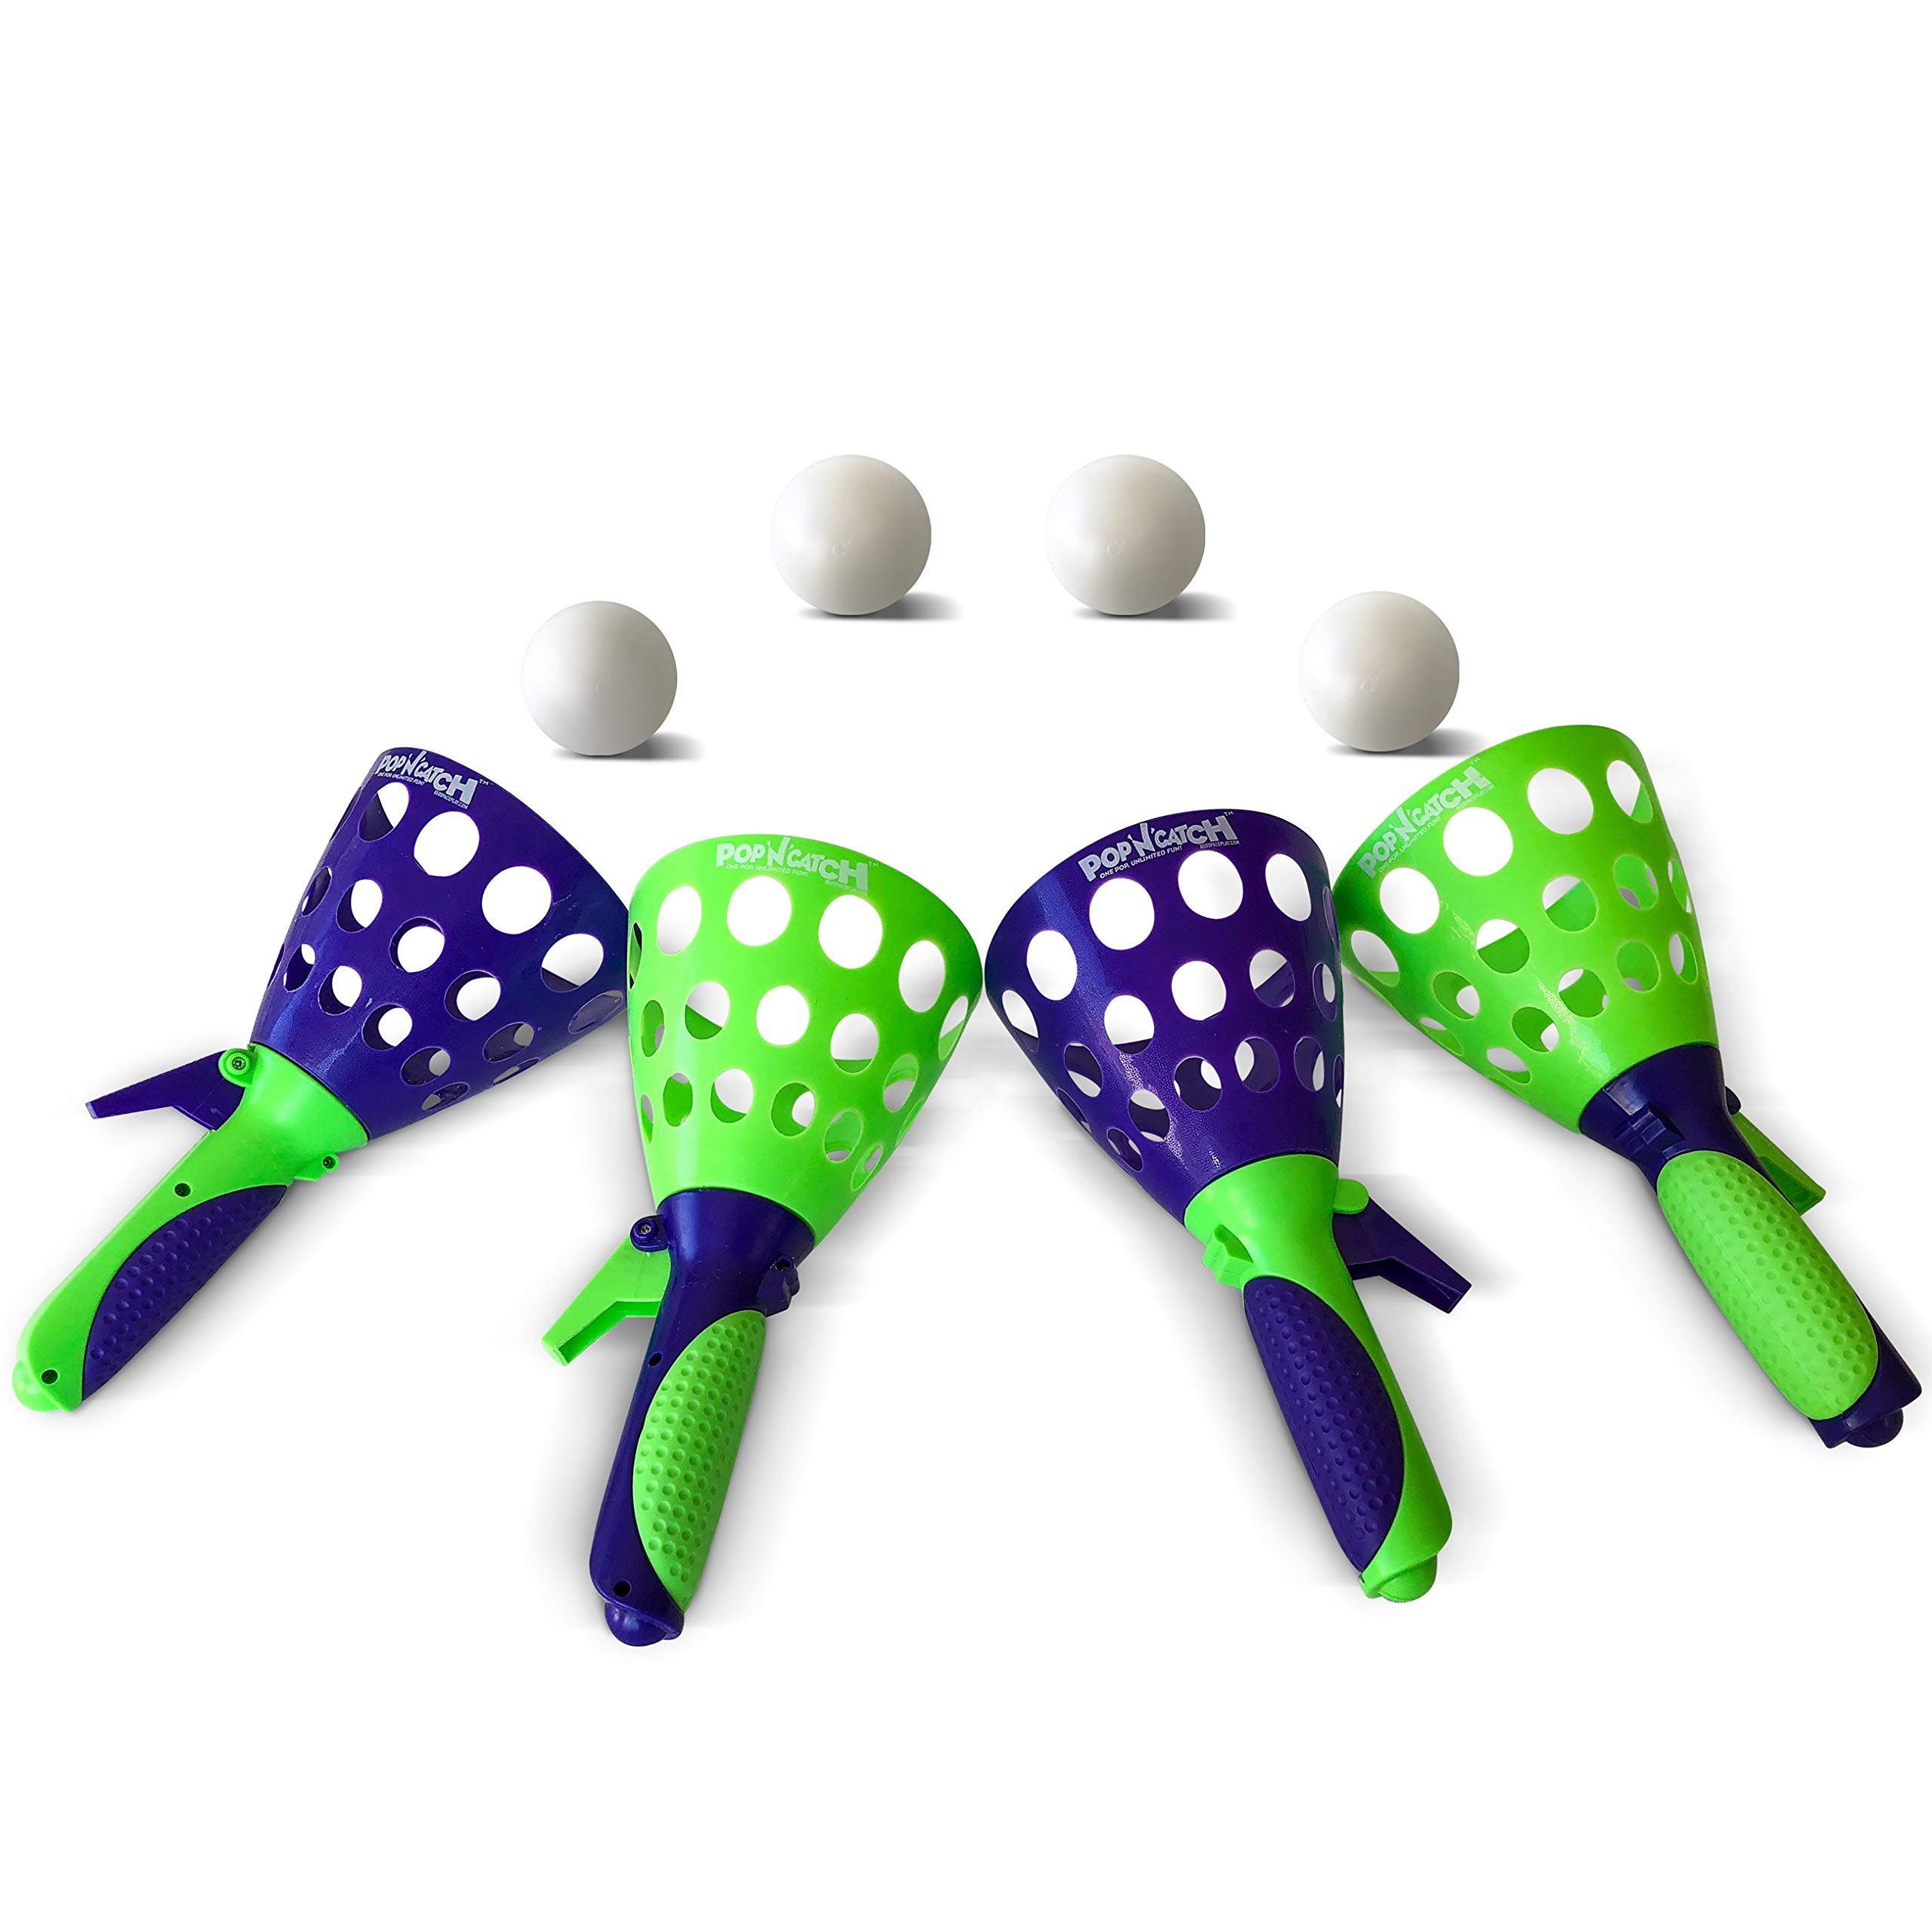 Geospace The Original Pop 'N Catch Game, Set of Four - Perfect for Backyard, Beach, Tailgate | Fun for Kids and Adults by Geospace